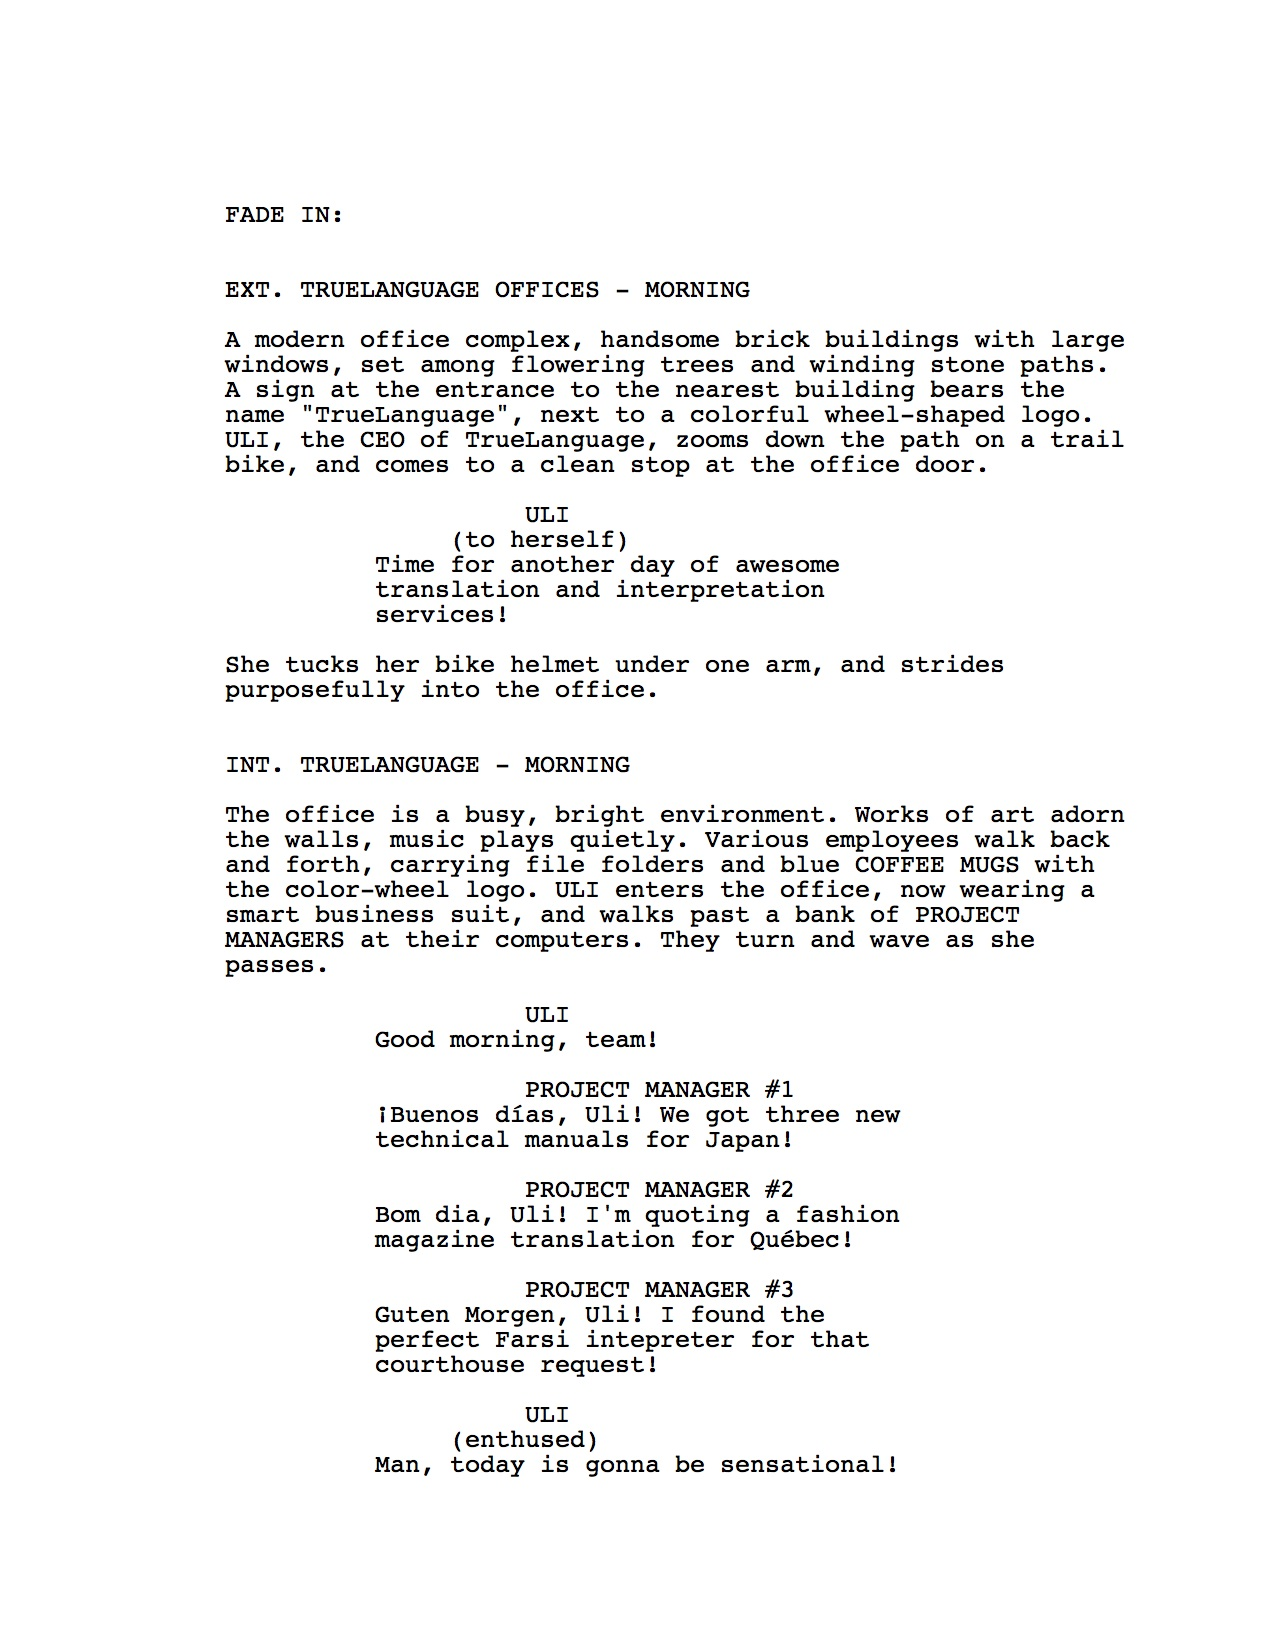 Movie script template ever seen a screenplay